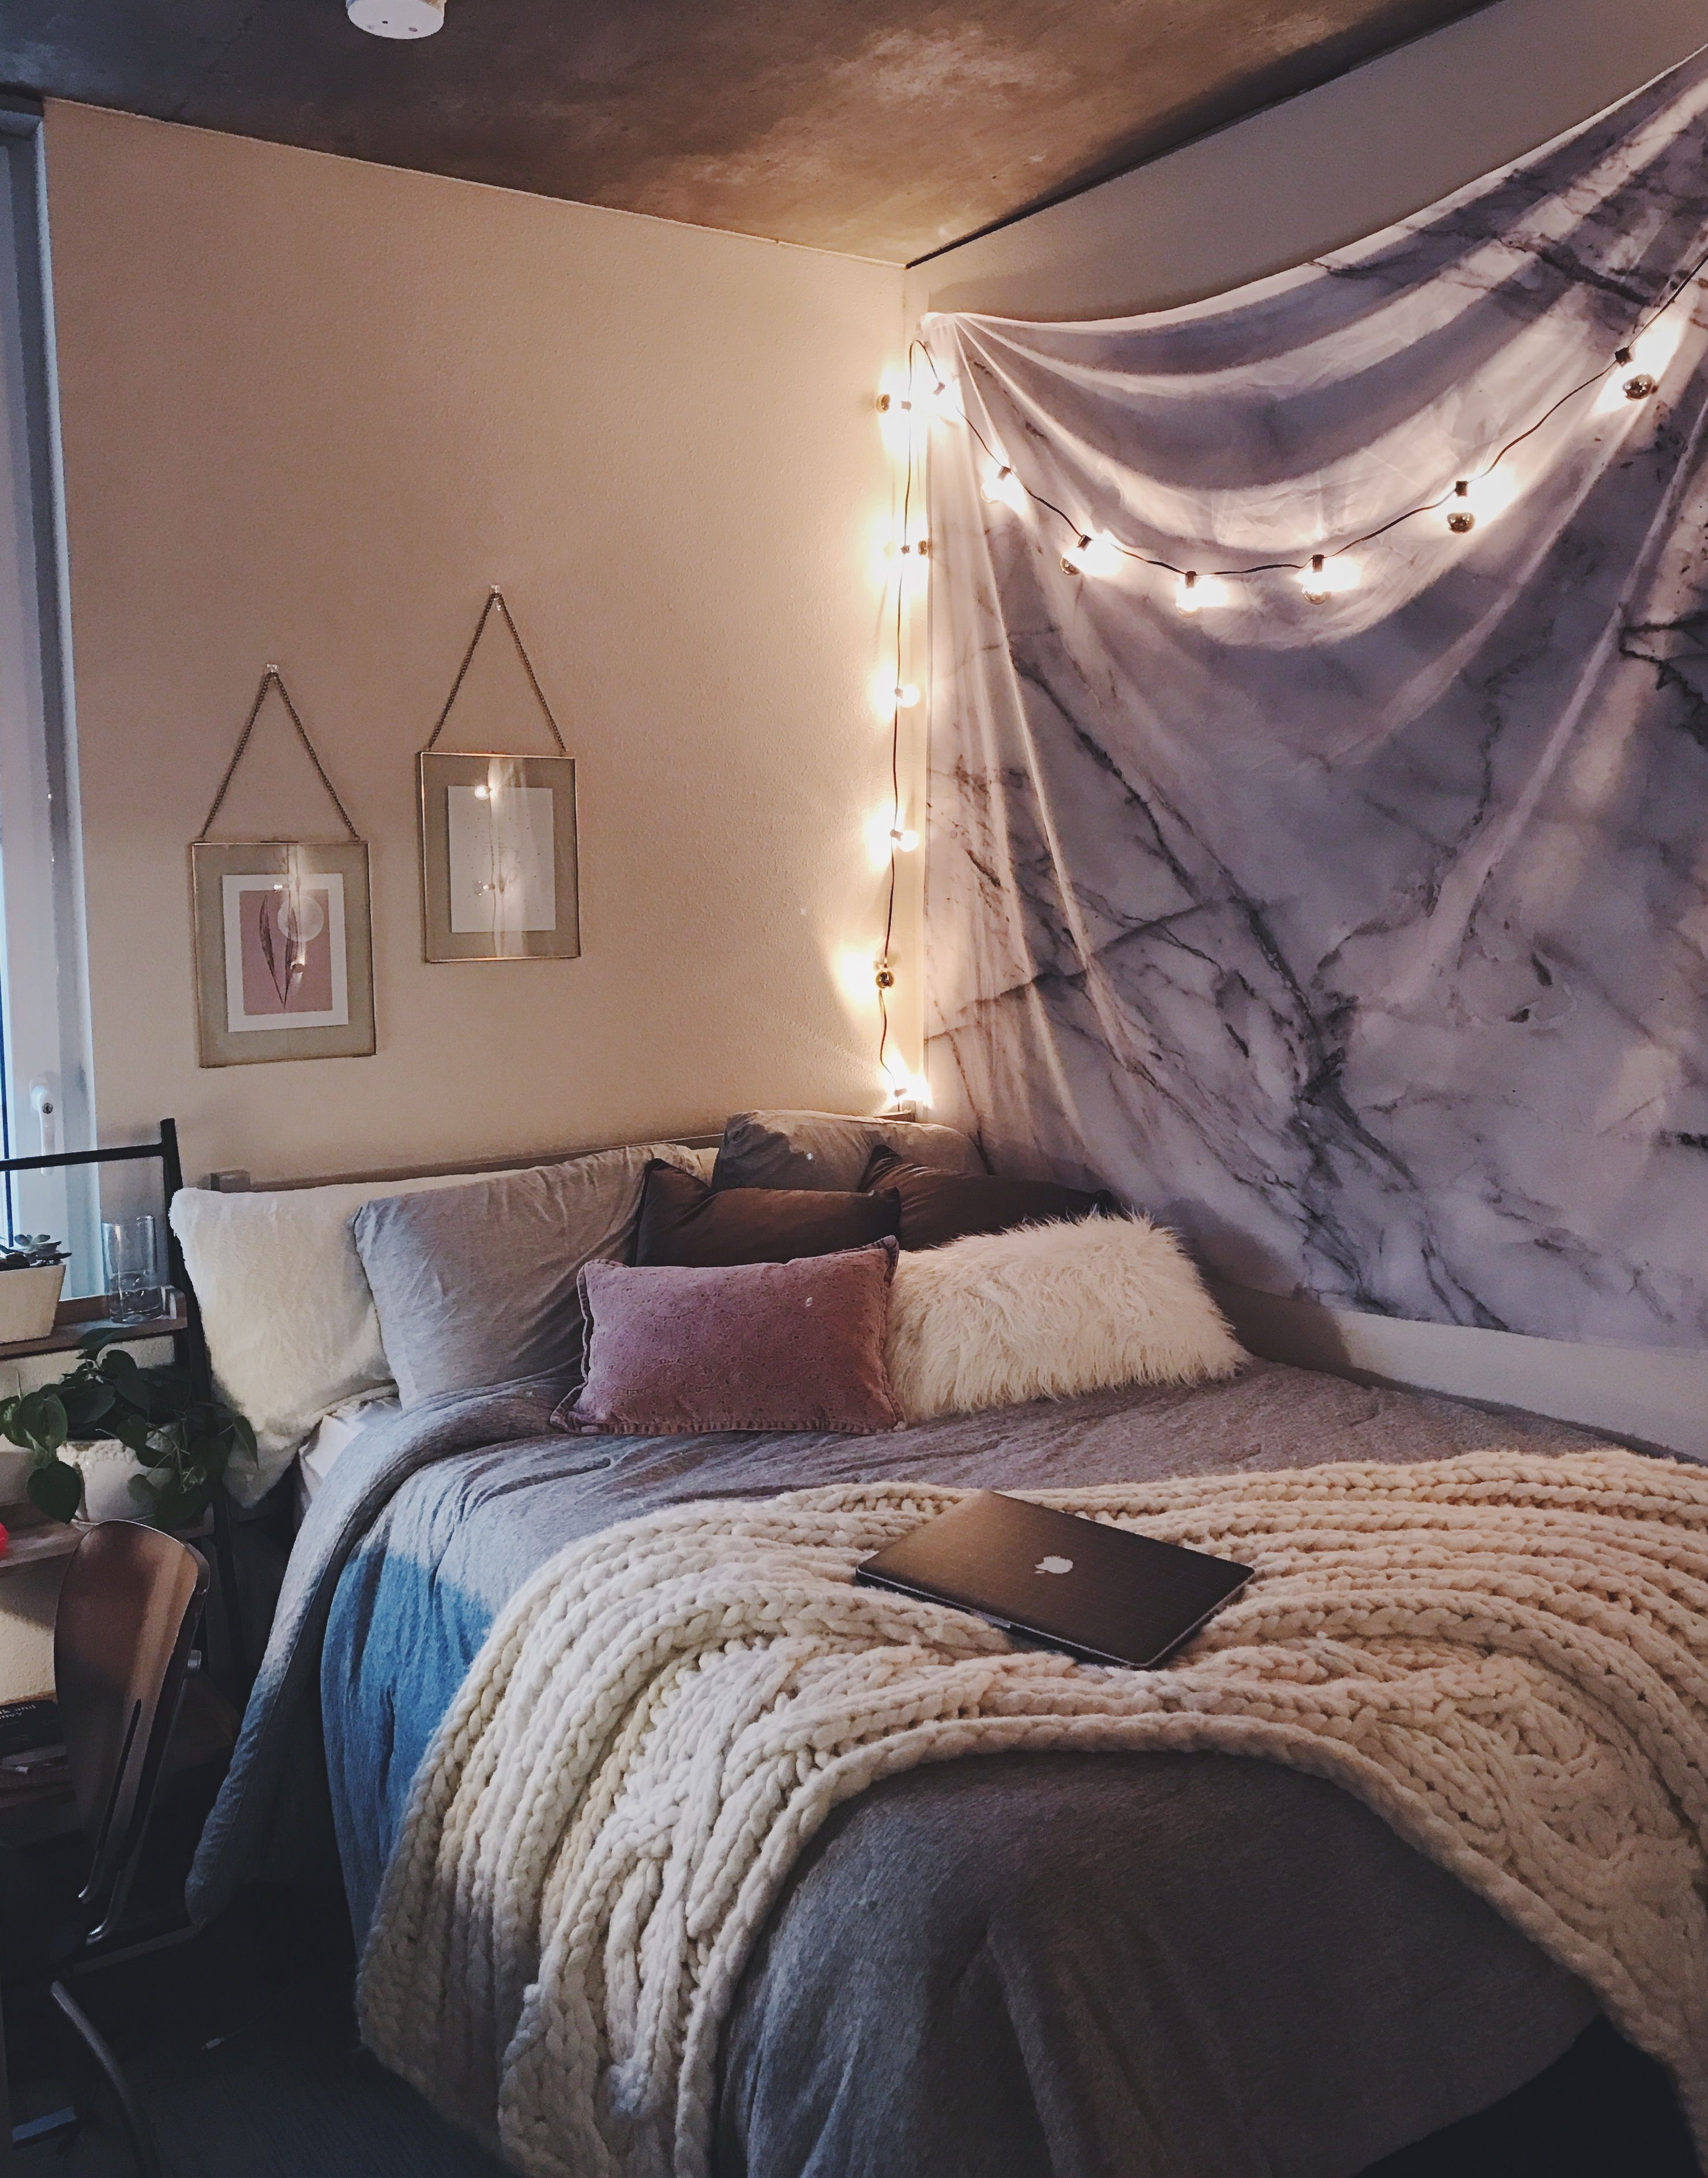 for room bedroom college decor dorm life lights decorating pin light string stringstring